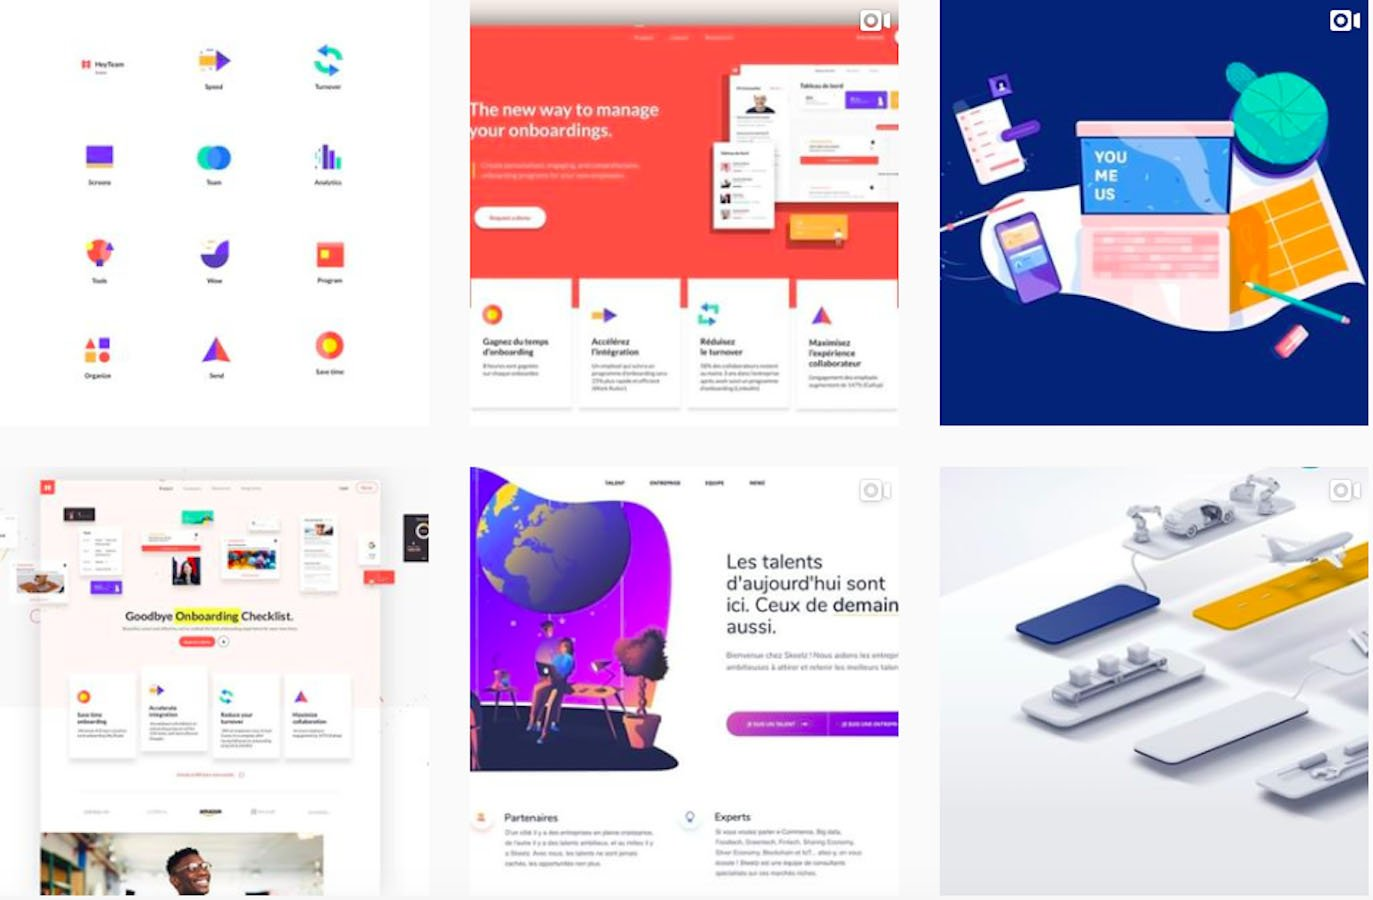 Web Design Inspiration: 110+ Accounts On Instagram and 10+ Best UX & Web Design Books in 2020 - agenceme